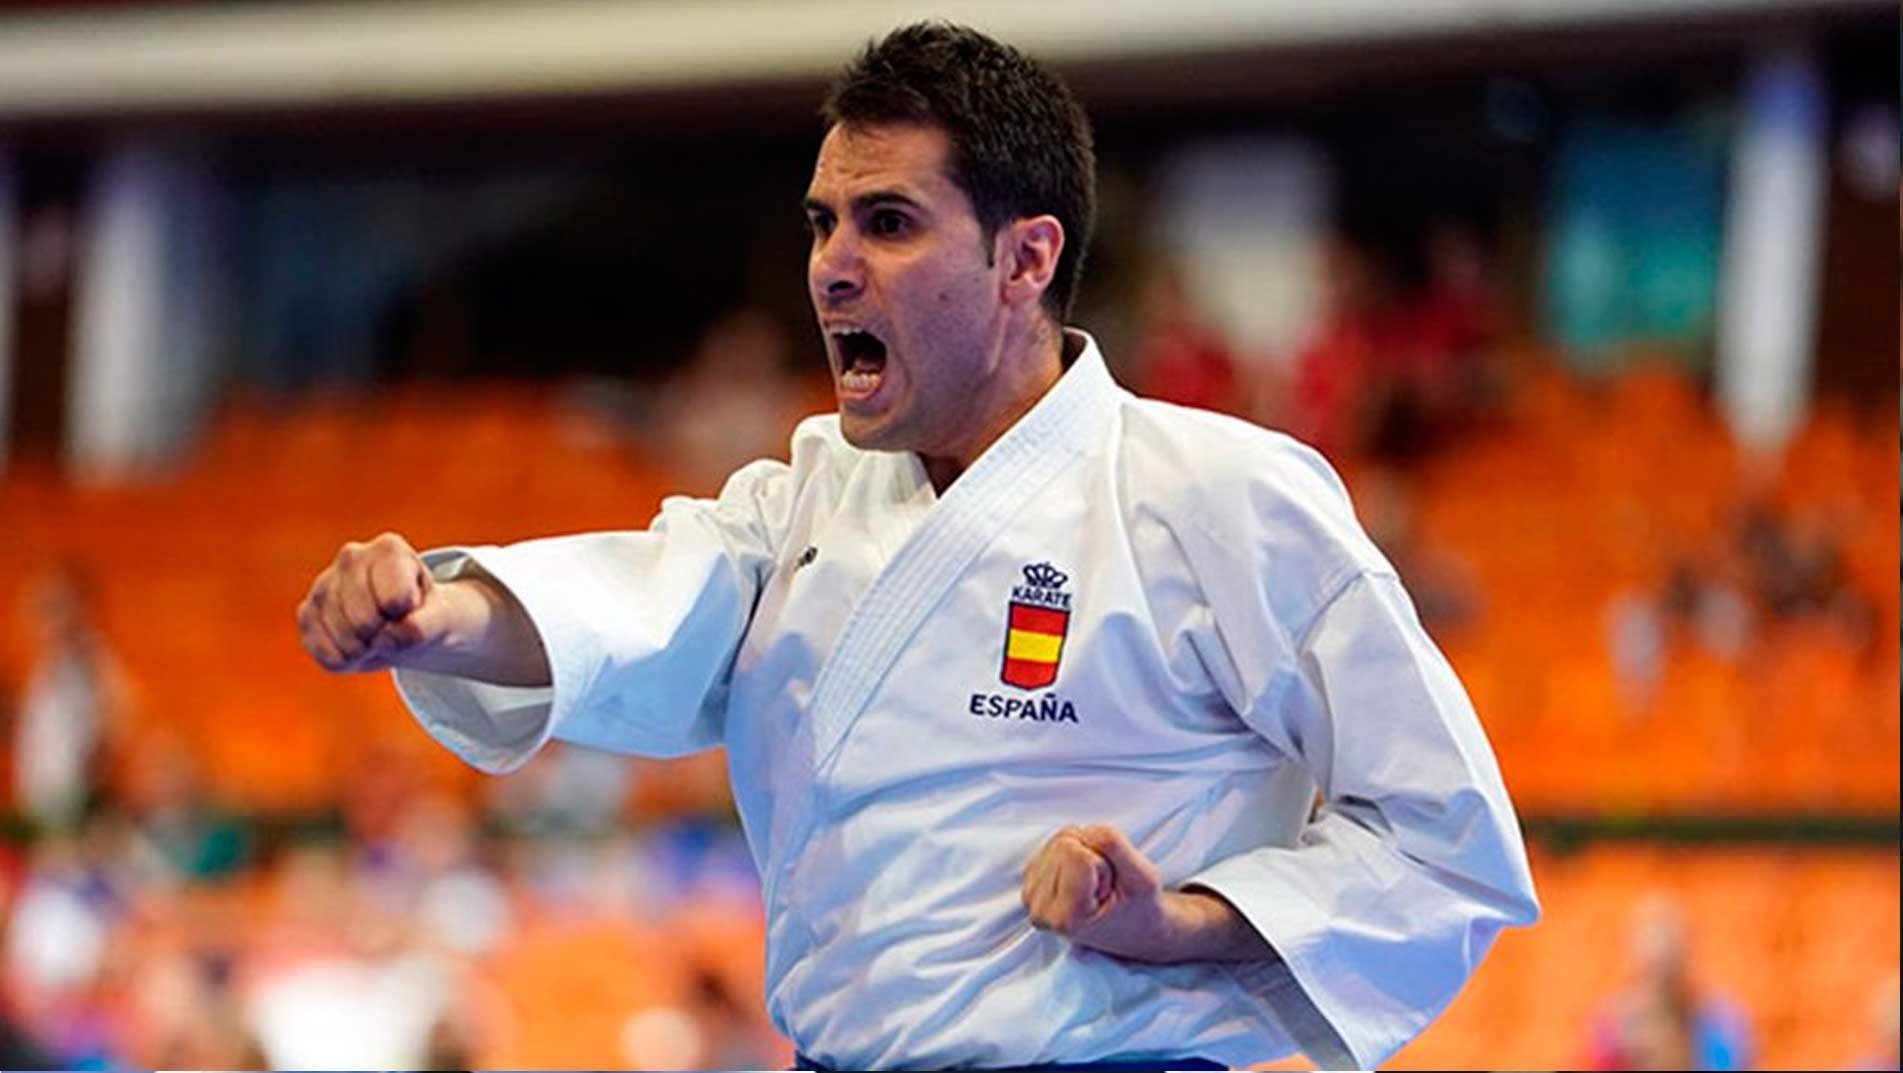 Record-breaking attendance anticipates memorable Para-Karate World Championships